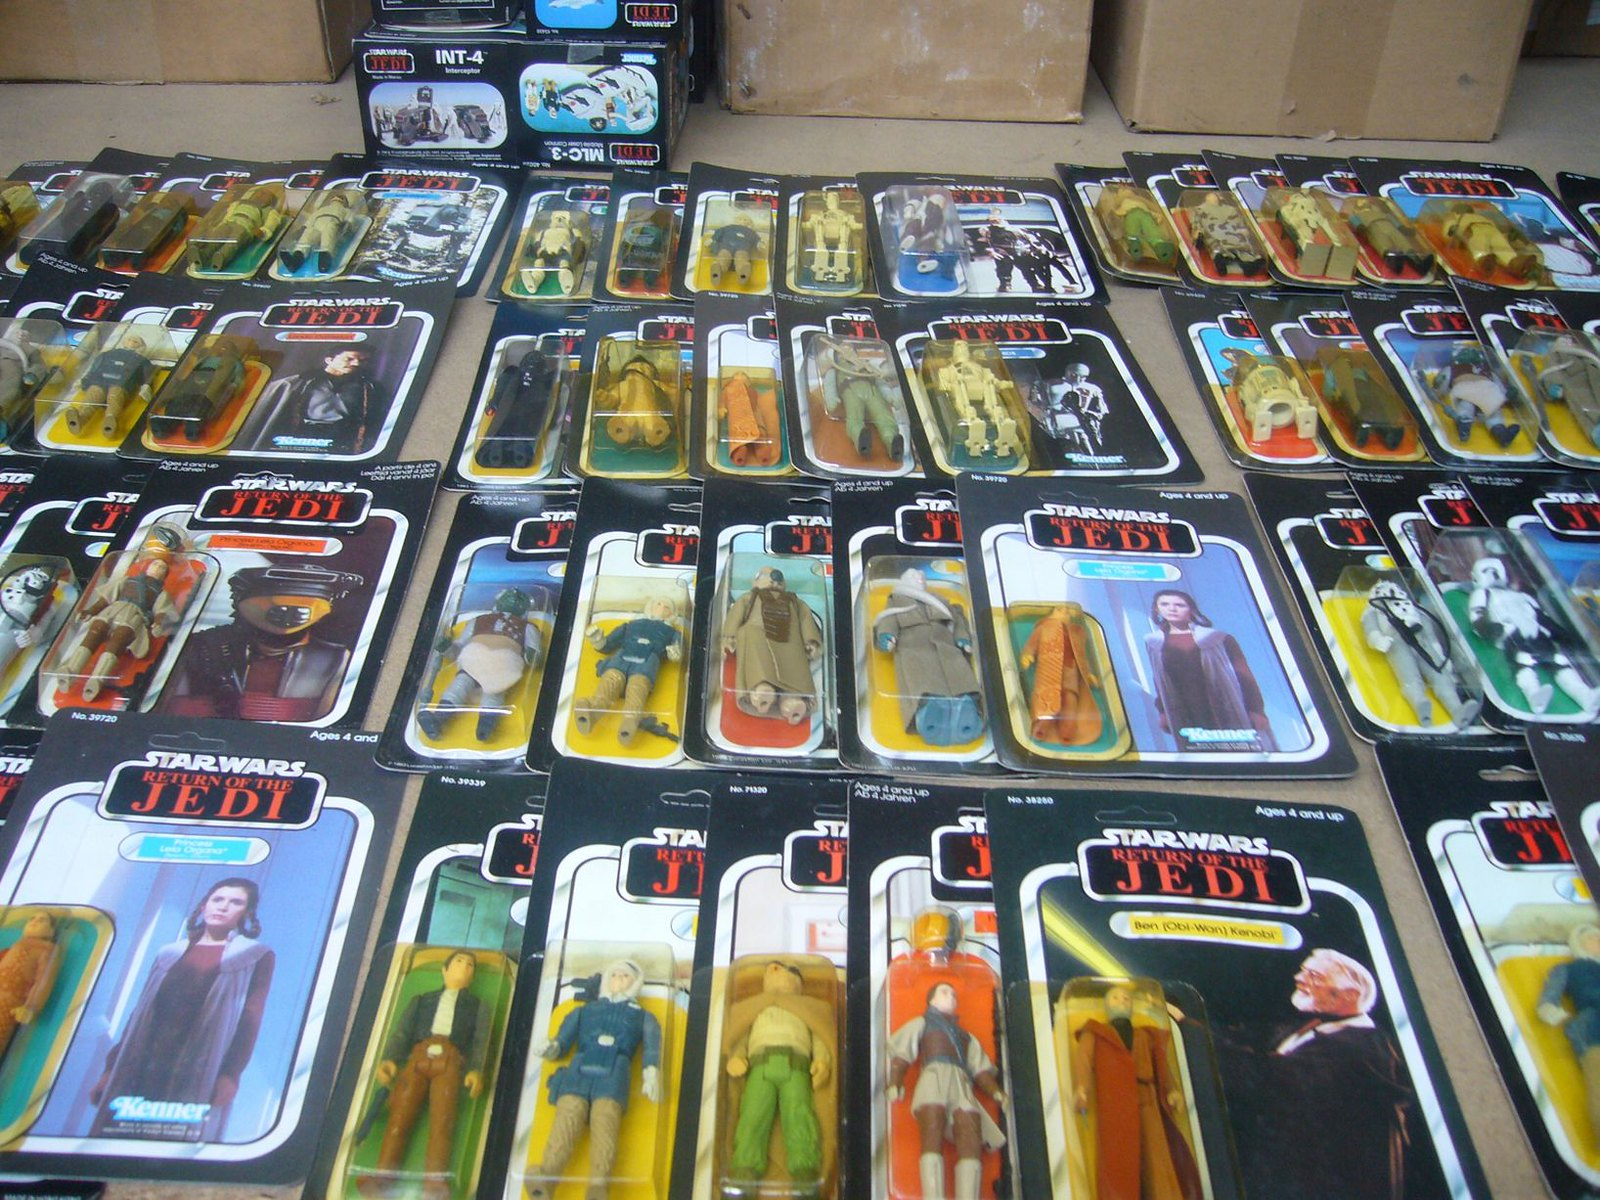 The Frank Beech retro toy shop - Star Wars Return of the Jedi action figures